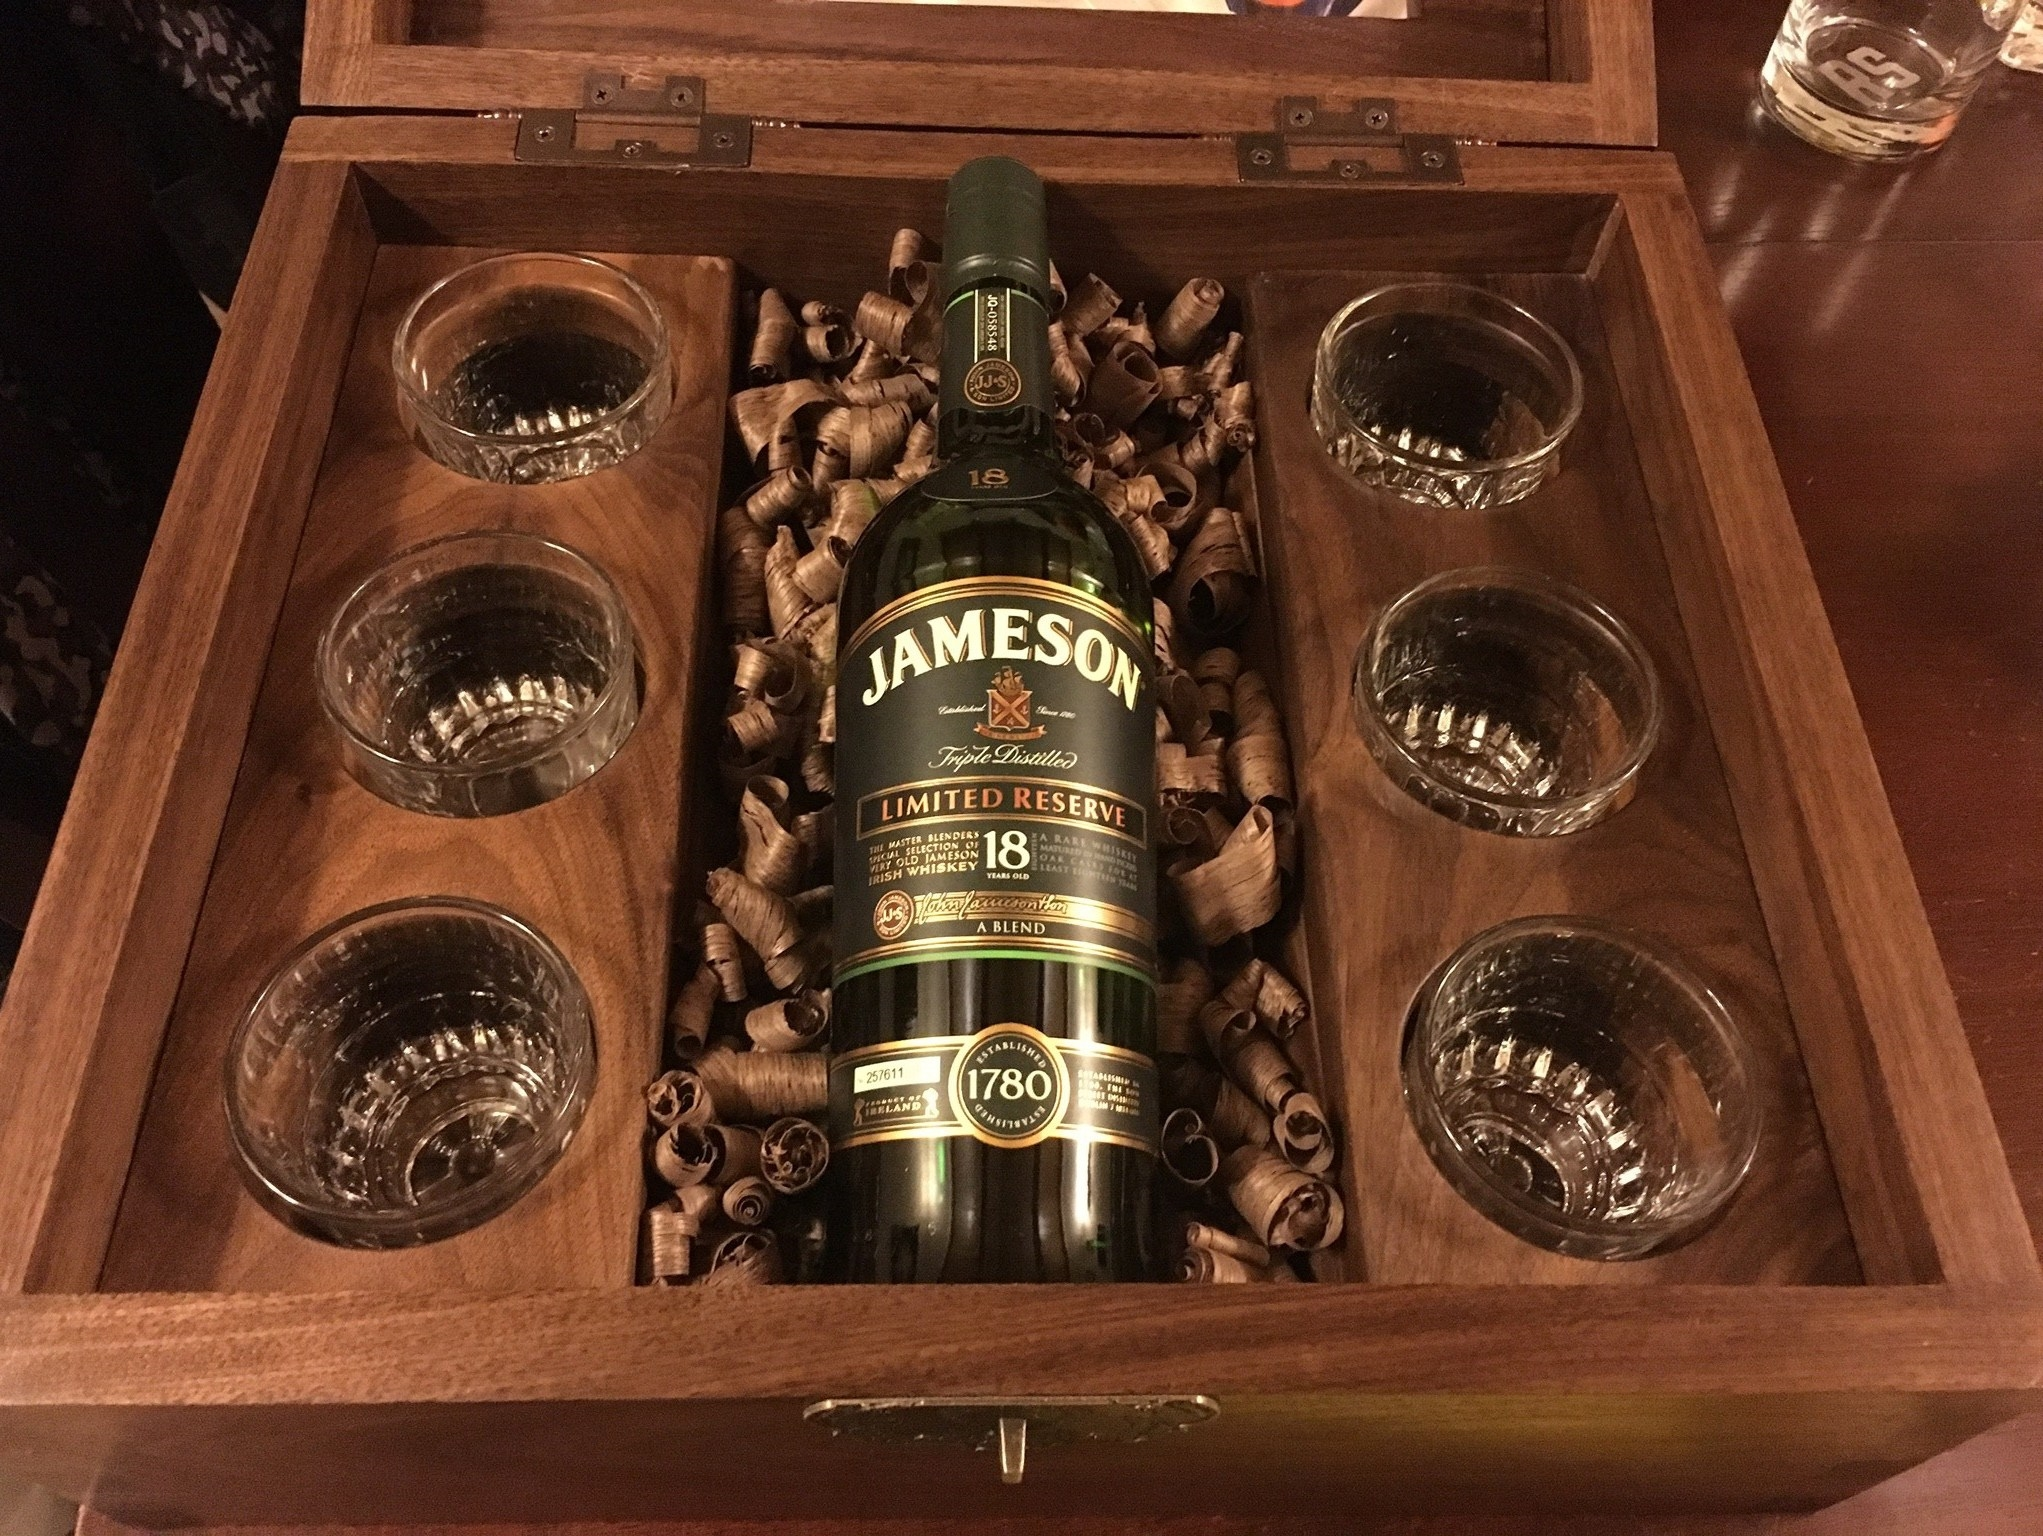 Interior of whiskey box.